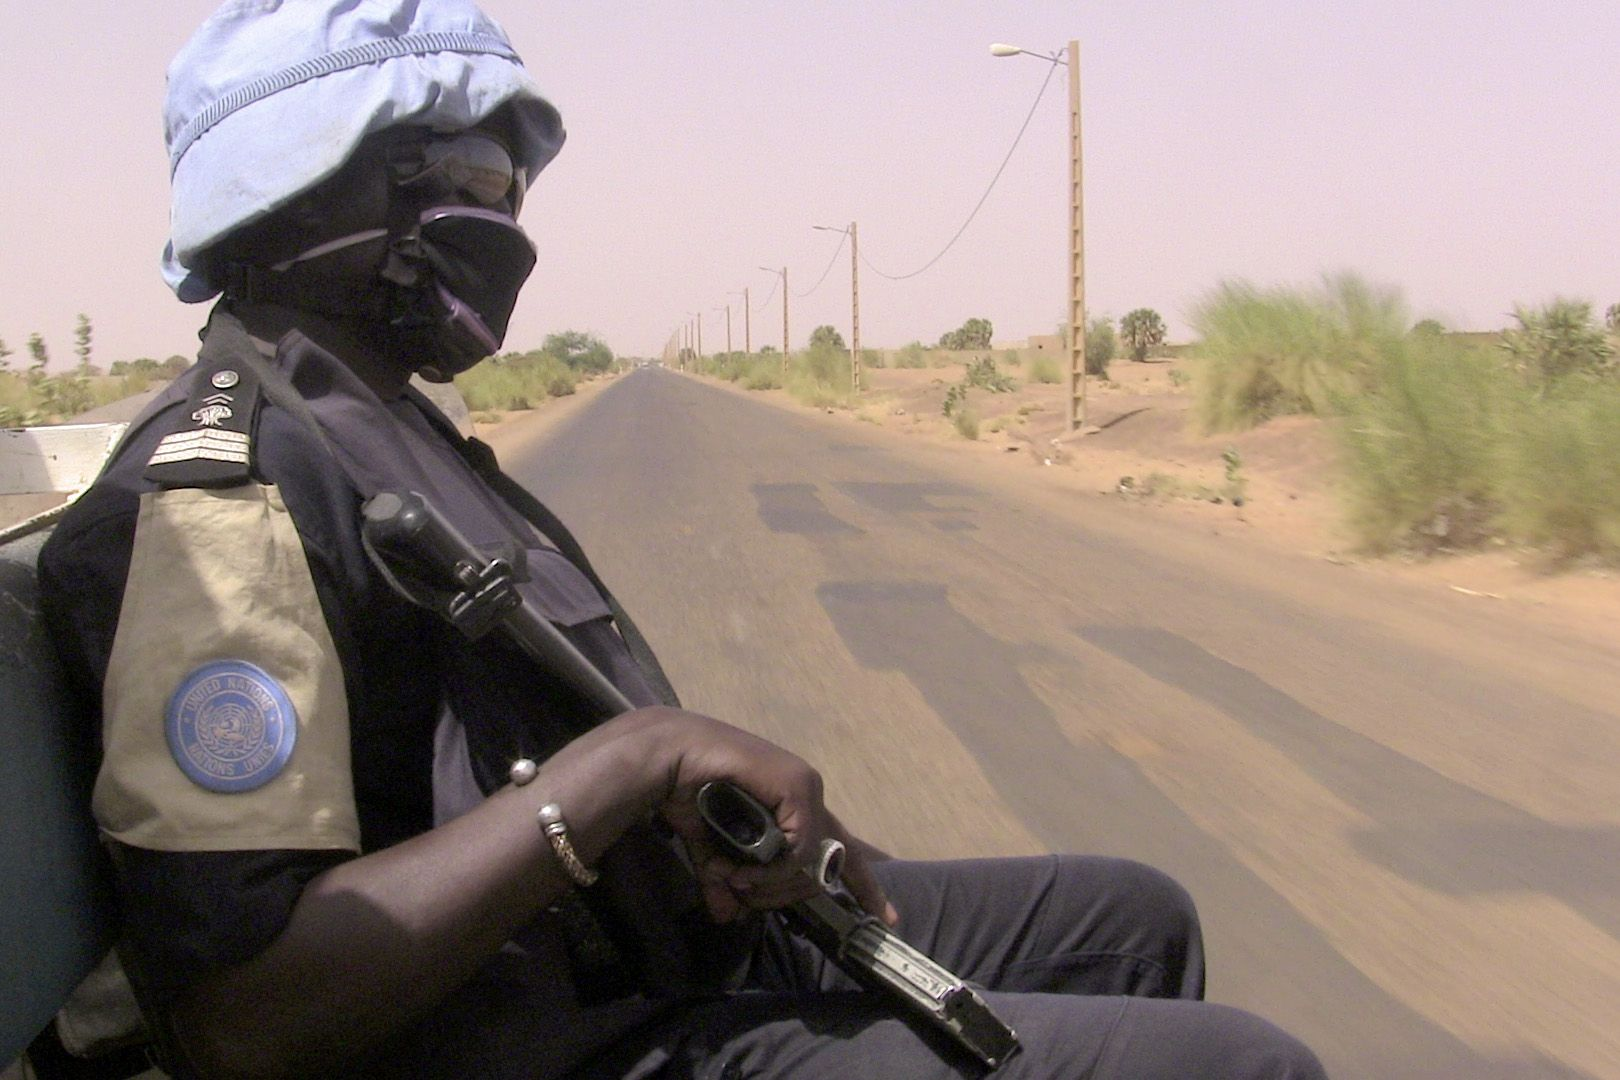 Malian police on patrol with MINUSMA.